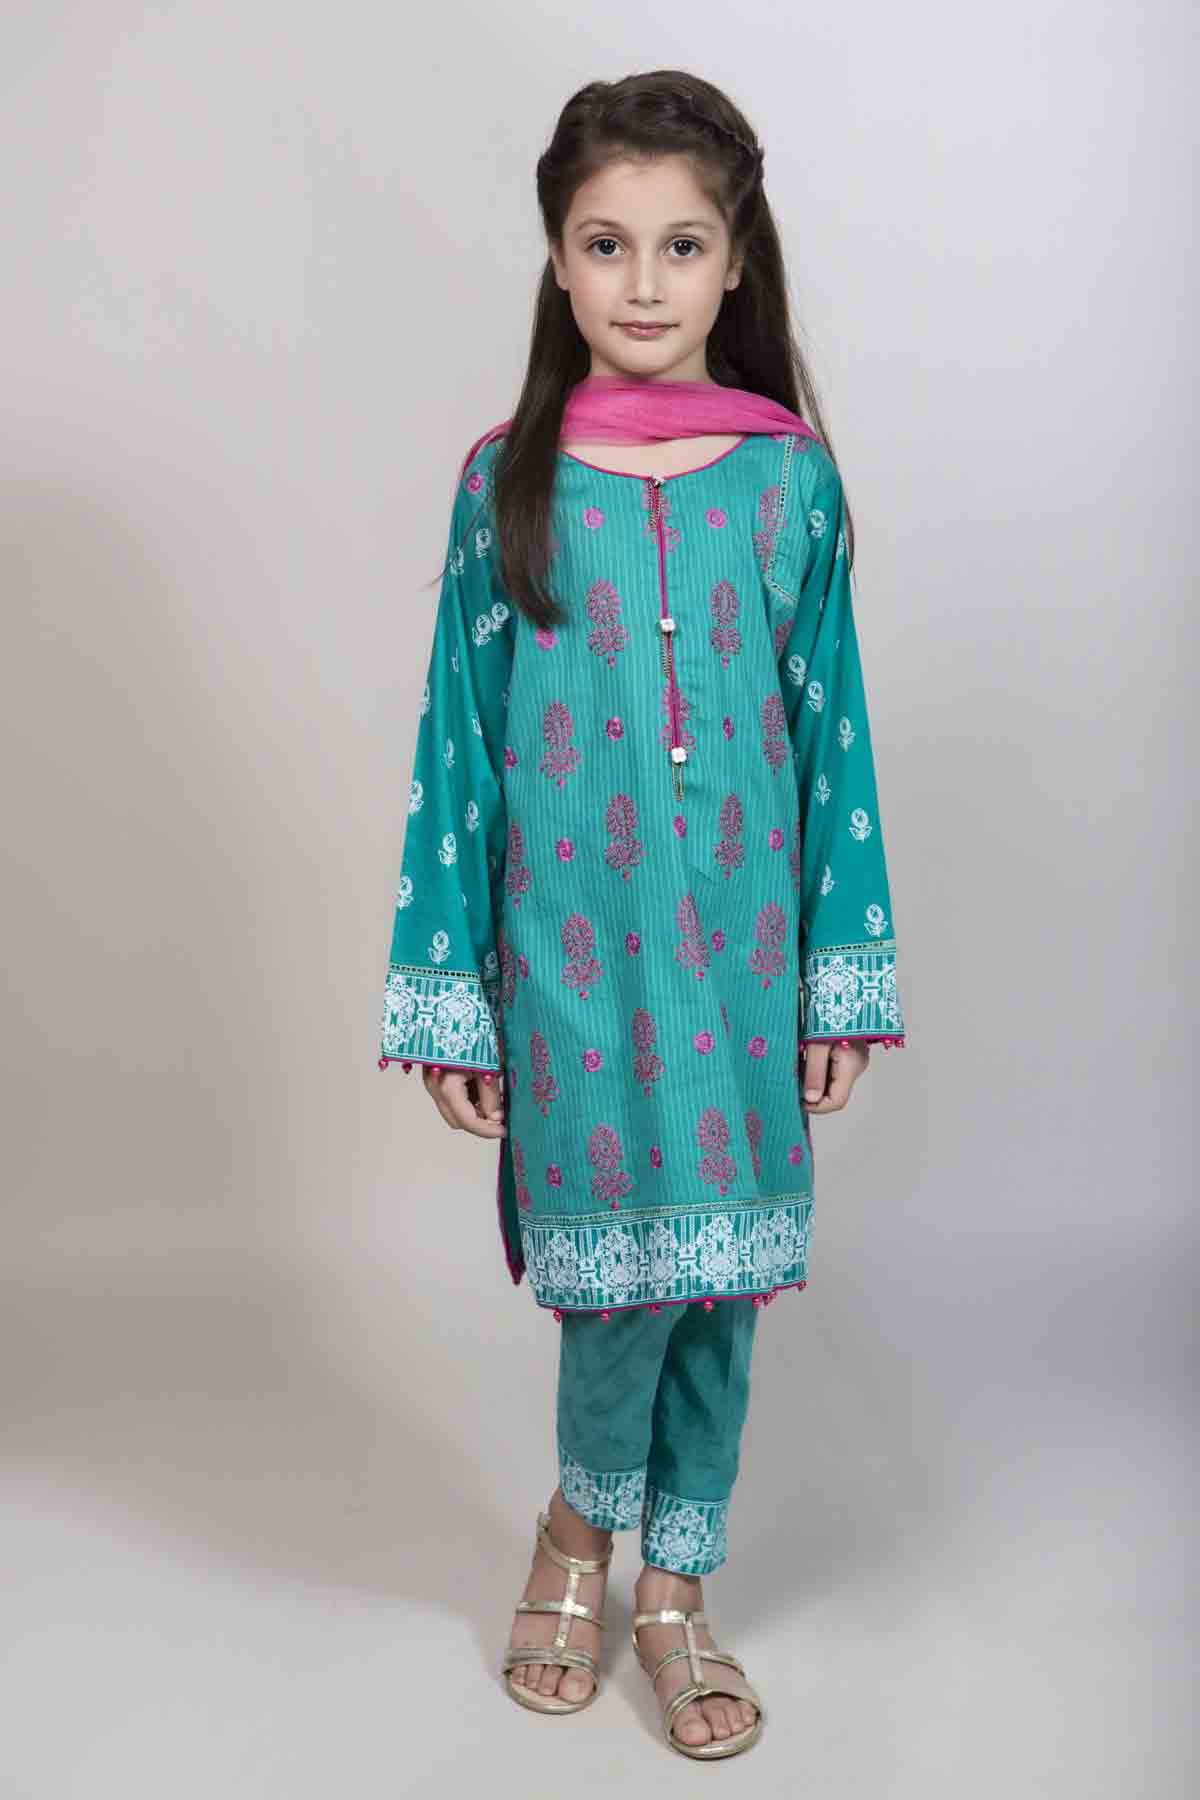 816030353bf New blue and pink kameez kurti for Pakistani girls Mariab kids party dresses  2017 for wedding